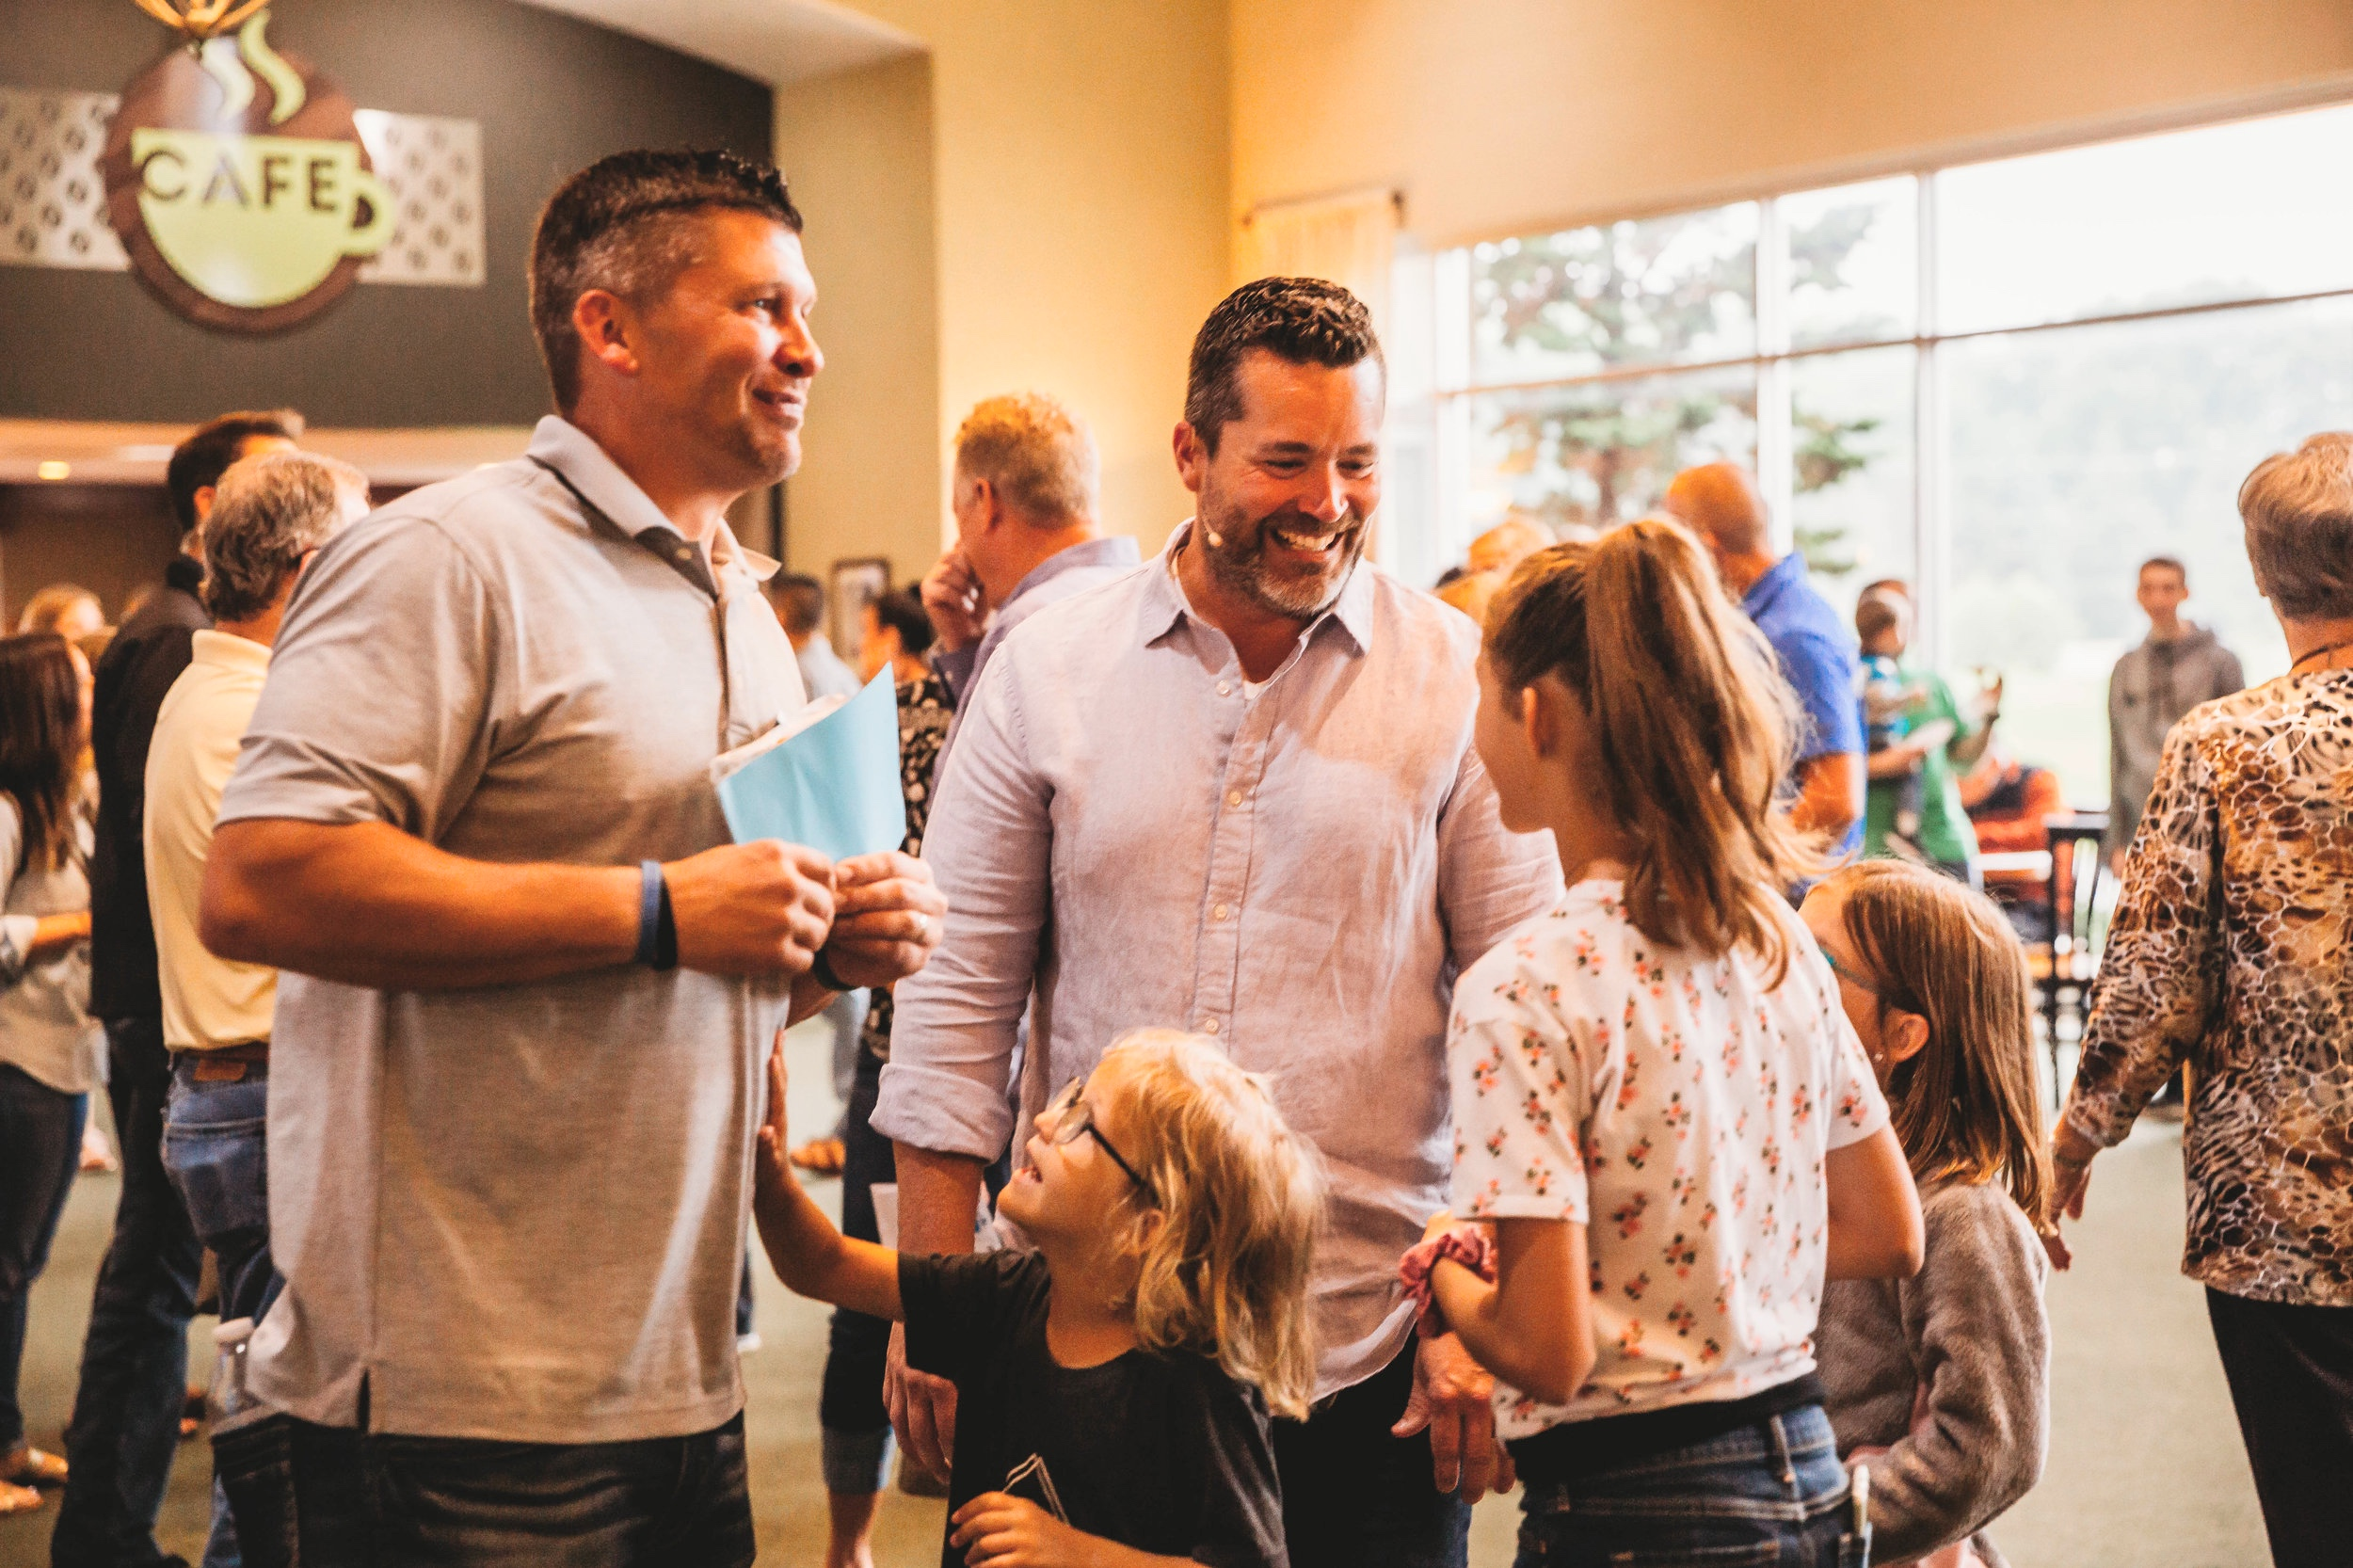 What to expect - Thinking about making a visit to Crossroads Community Church? Click the link to read more about what you can expect during your visit.